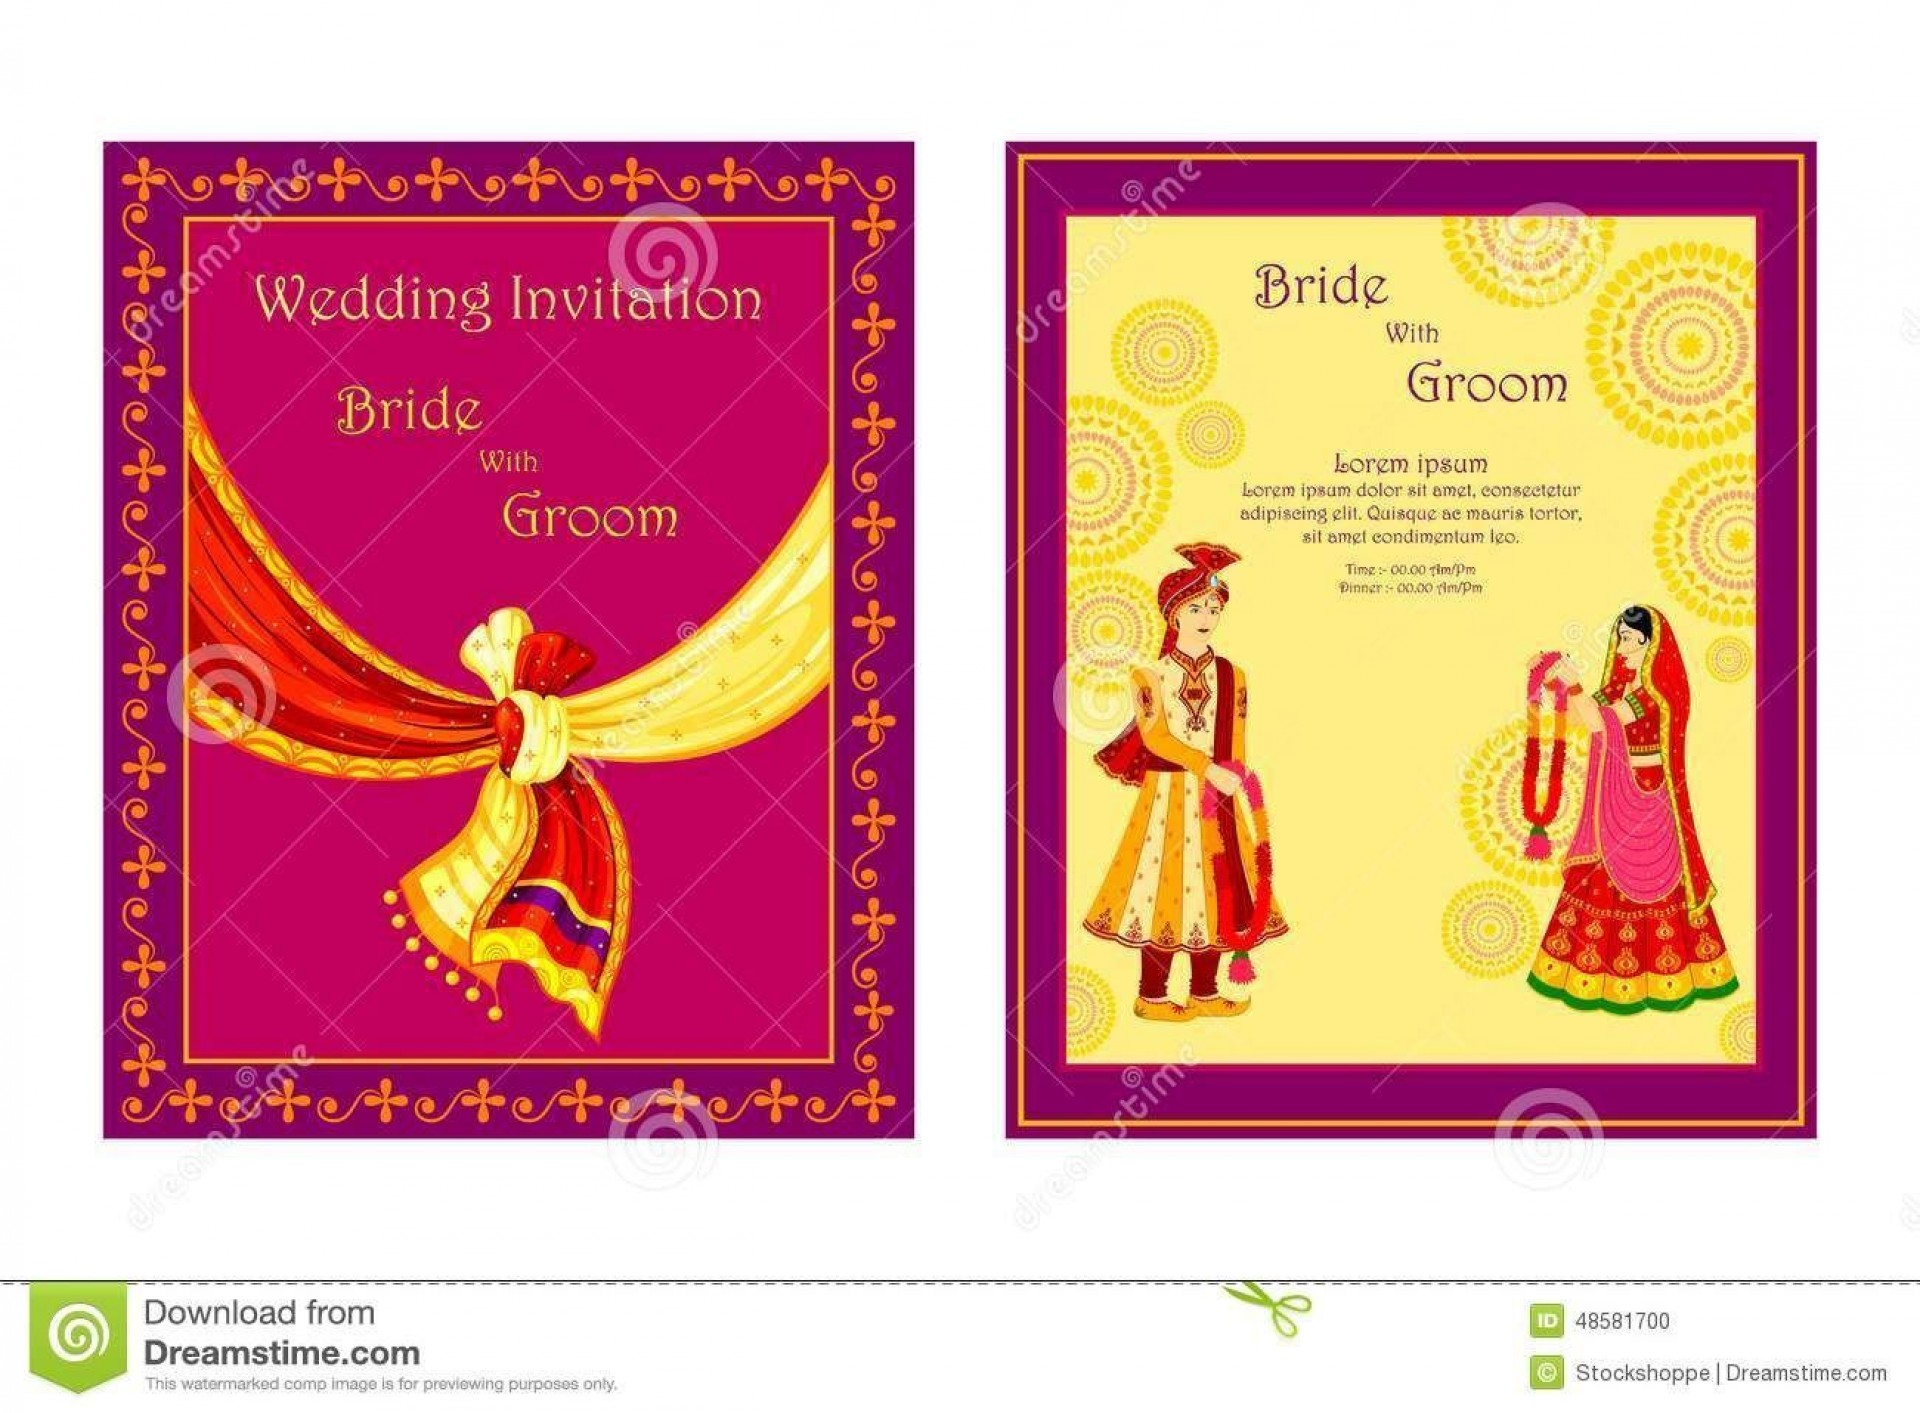 006 Magnificent Free Download Wedding Invitation Maker Software Idea  Video For Window 7 Card1920